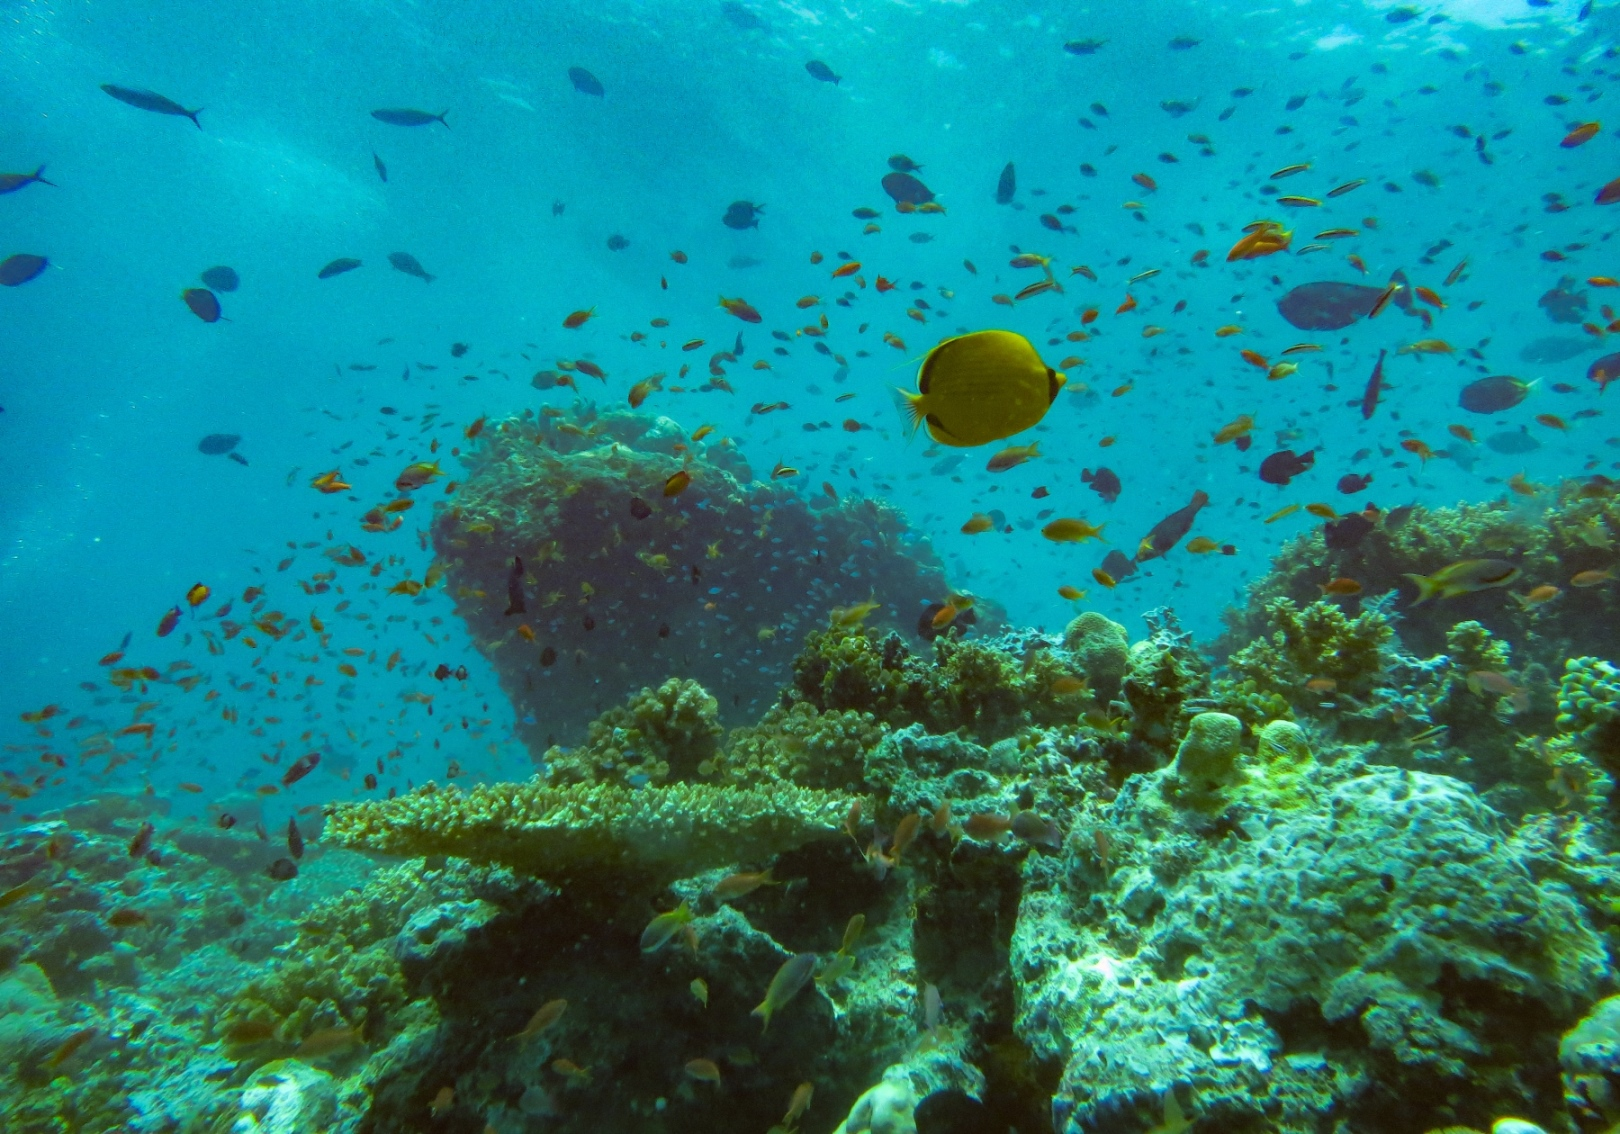 A diversity of fish species on a coral reef in Sabah, Malaysia. A healthy coral reef supports many species of fish, as well sea turtles, soft corals, and invertebrates such as starfish, squid, and shrimp.